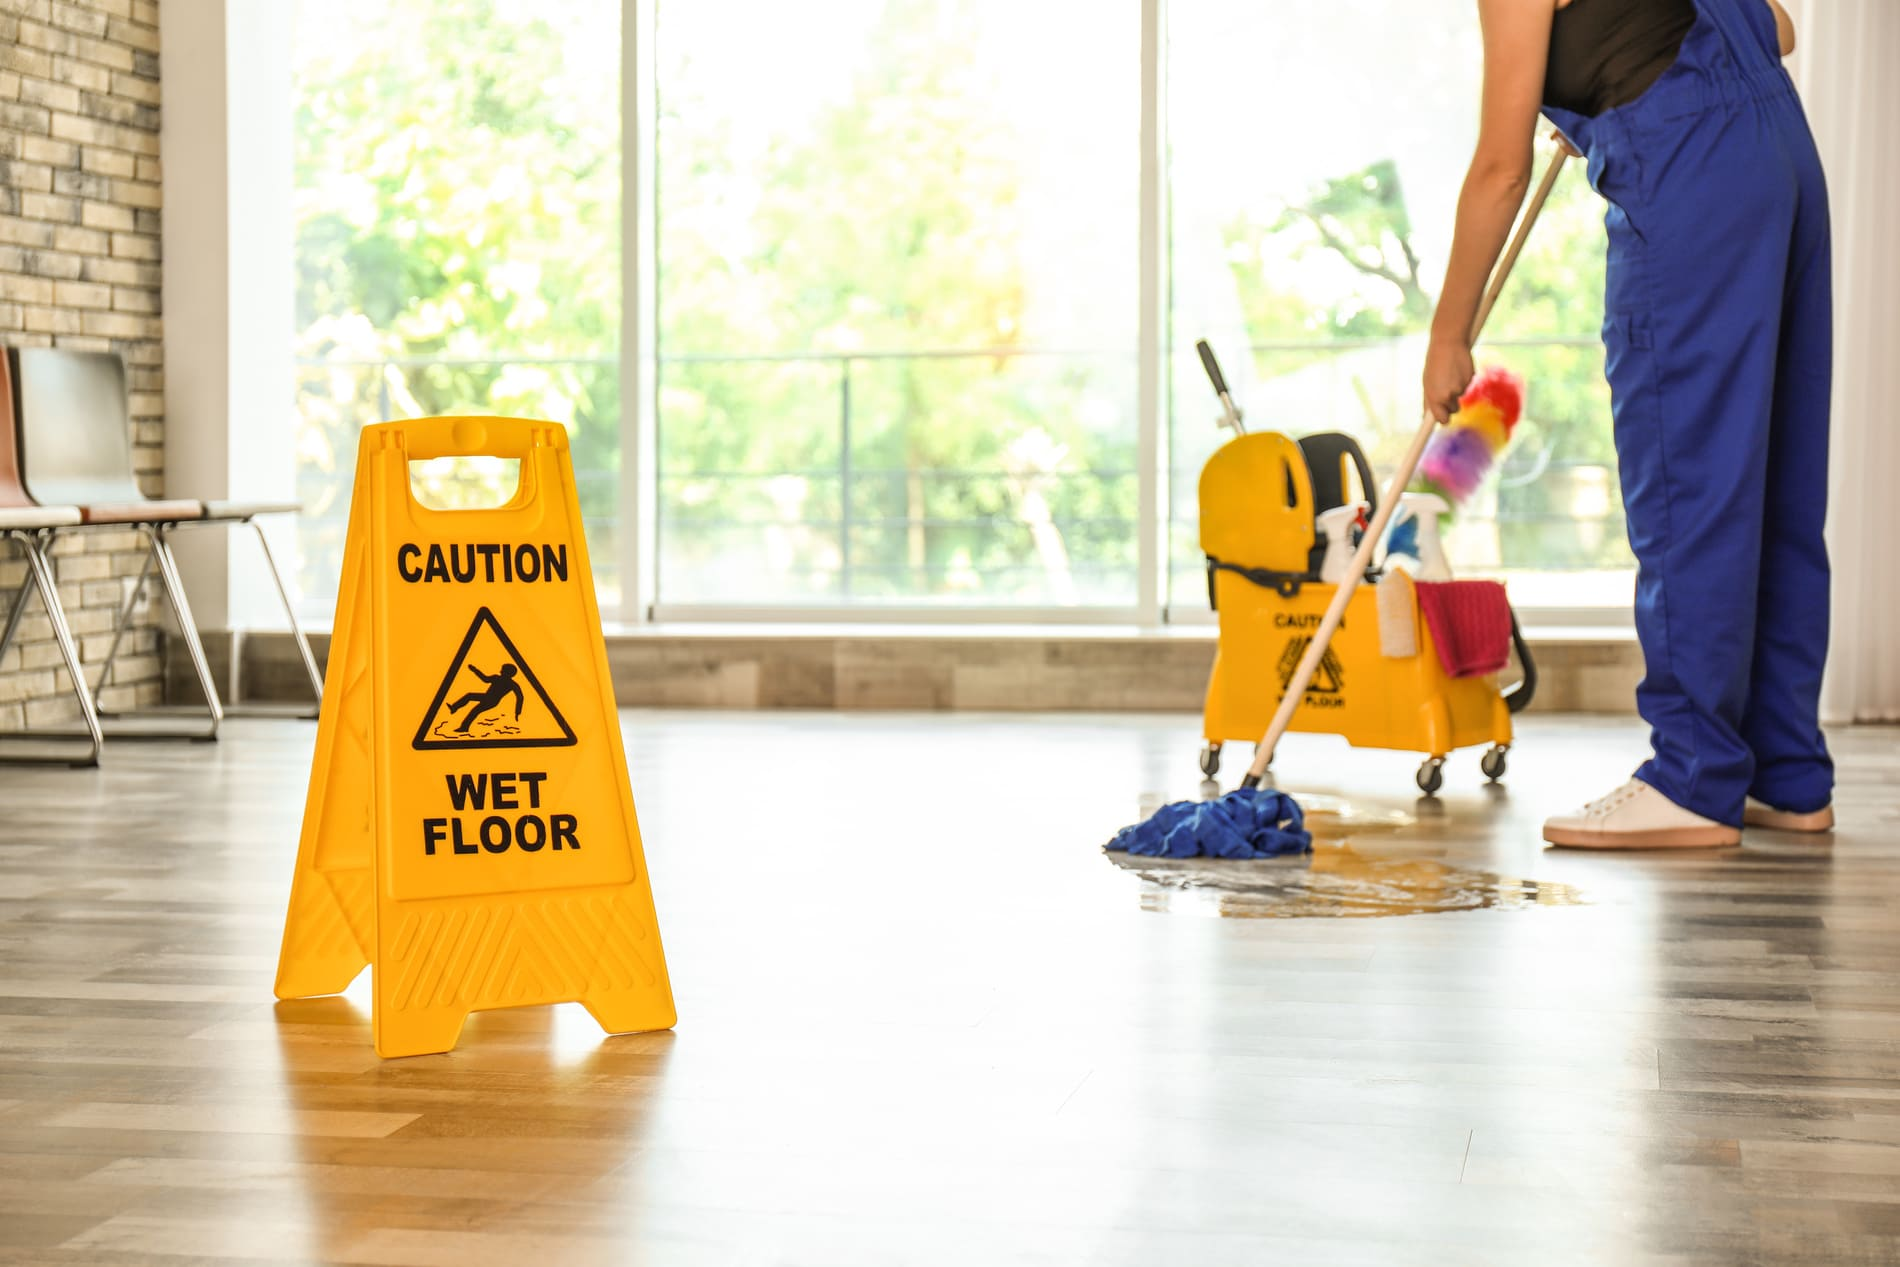 professional-commercial-cleaning-services-chicago-janitorial-services-chicago